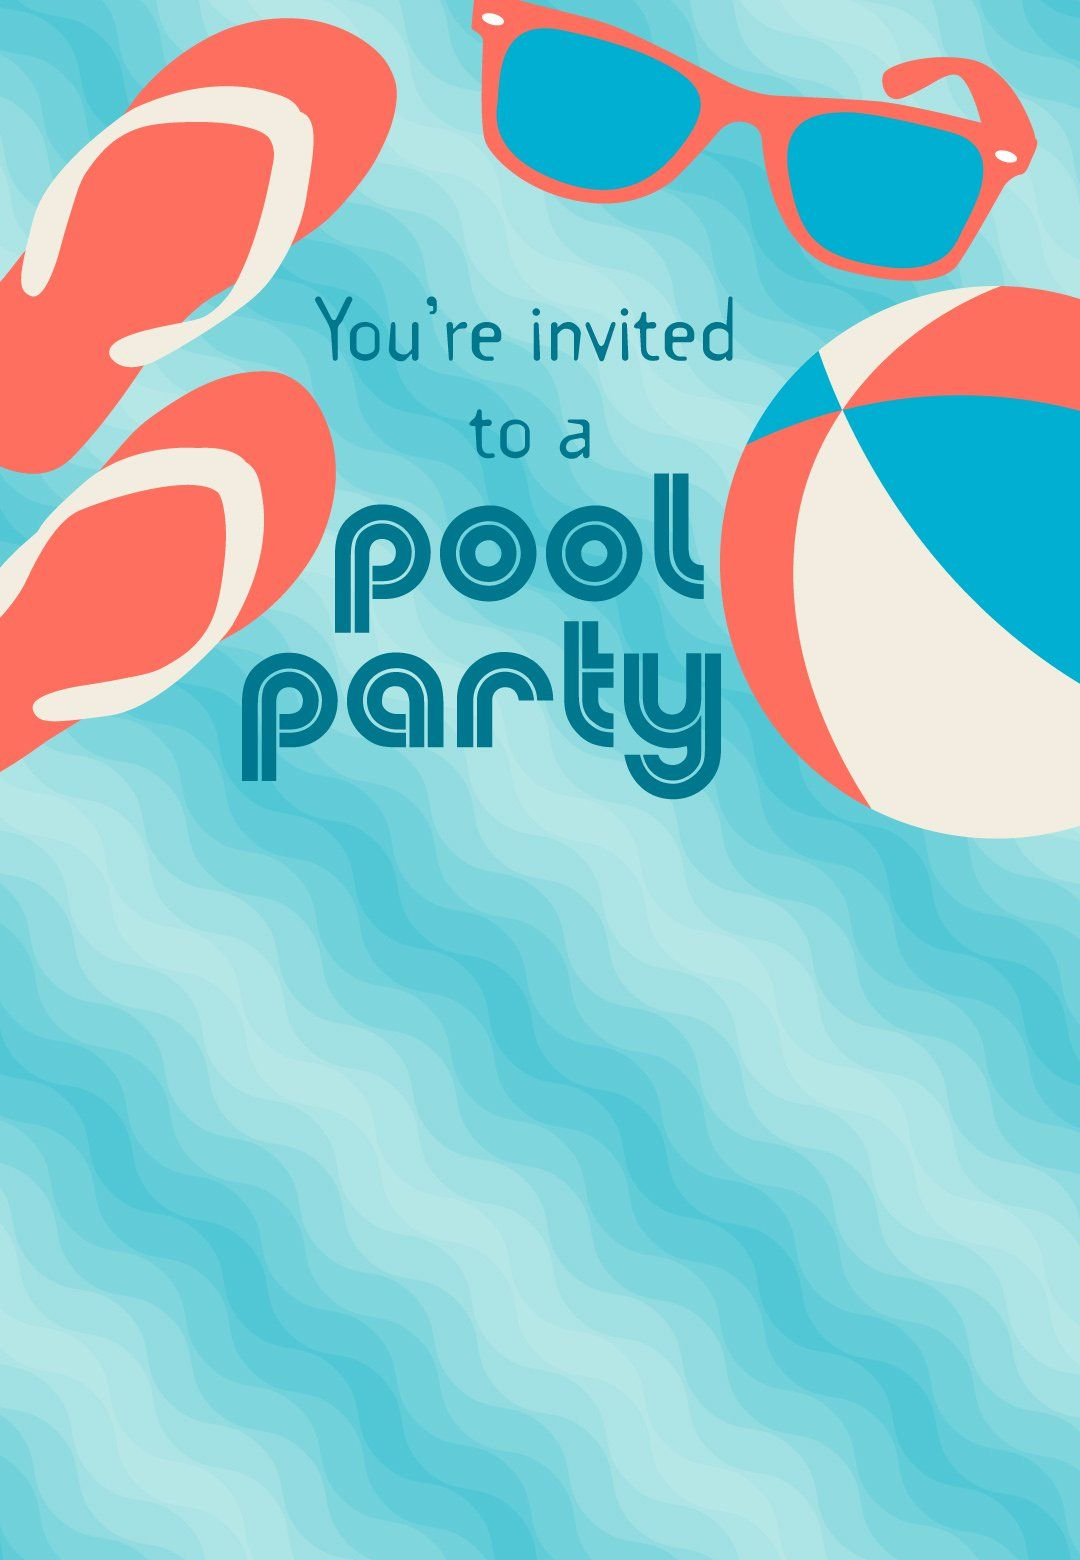 Pool Party Stuff Free Party Invitation Template Greetings Island